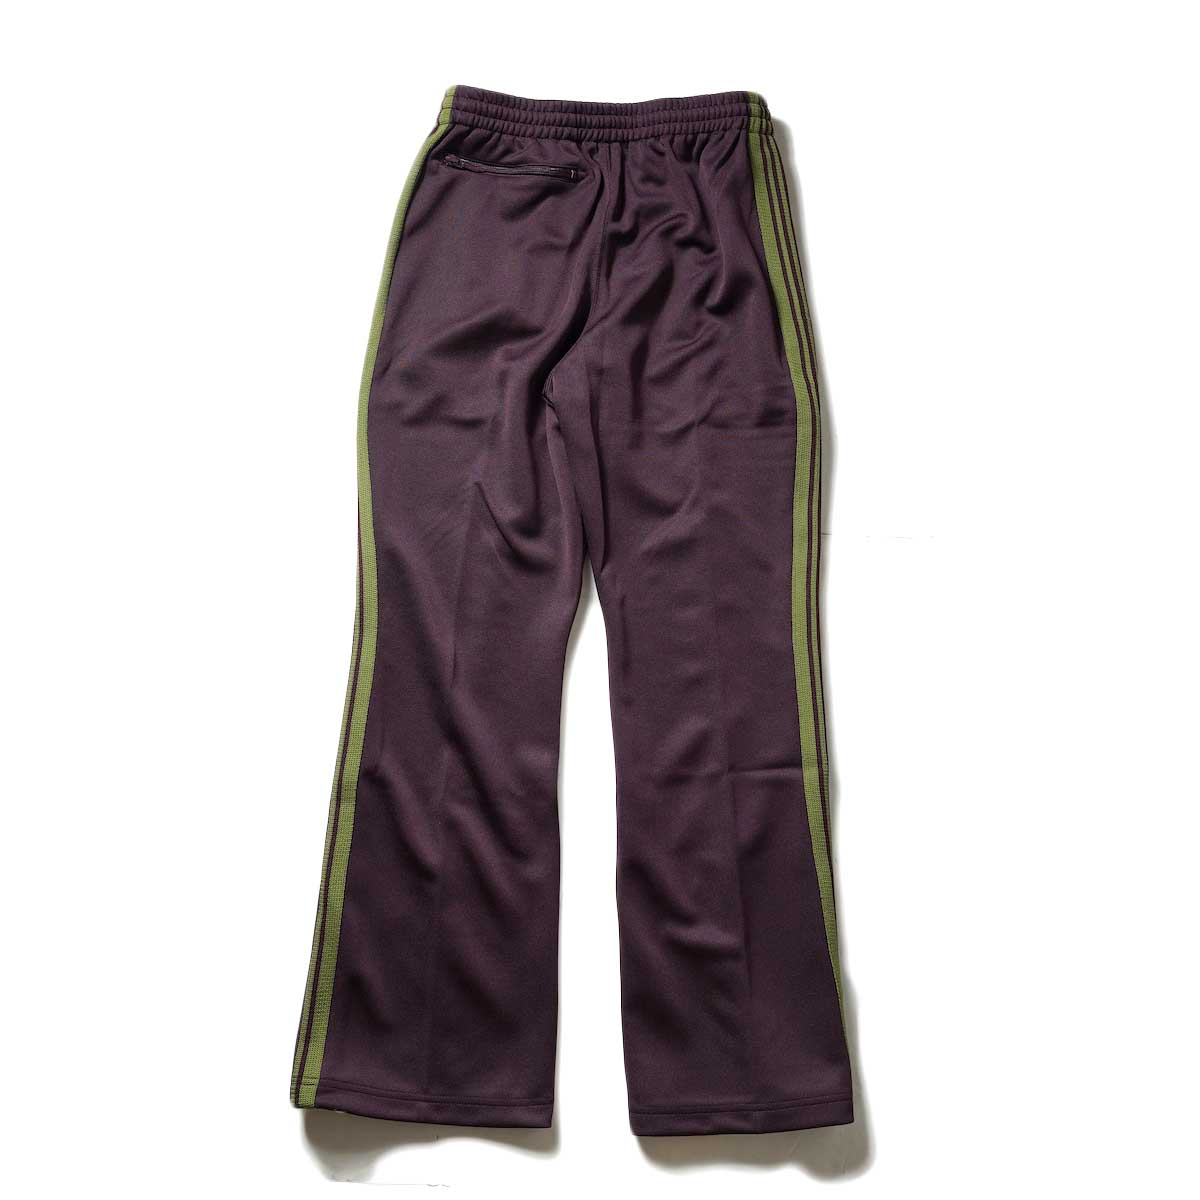 Needles / Boot-Cut Track Pant -Poly Smooth (Maroon)背面